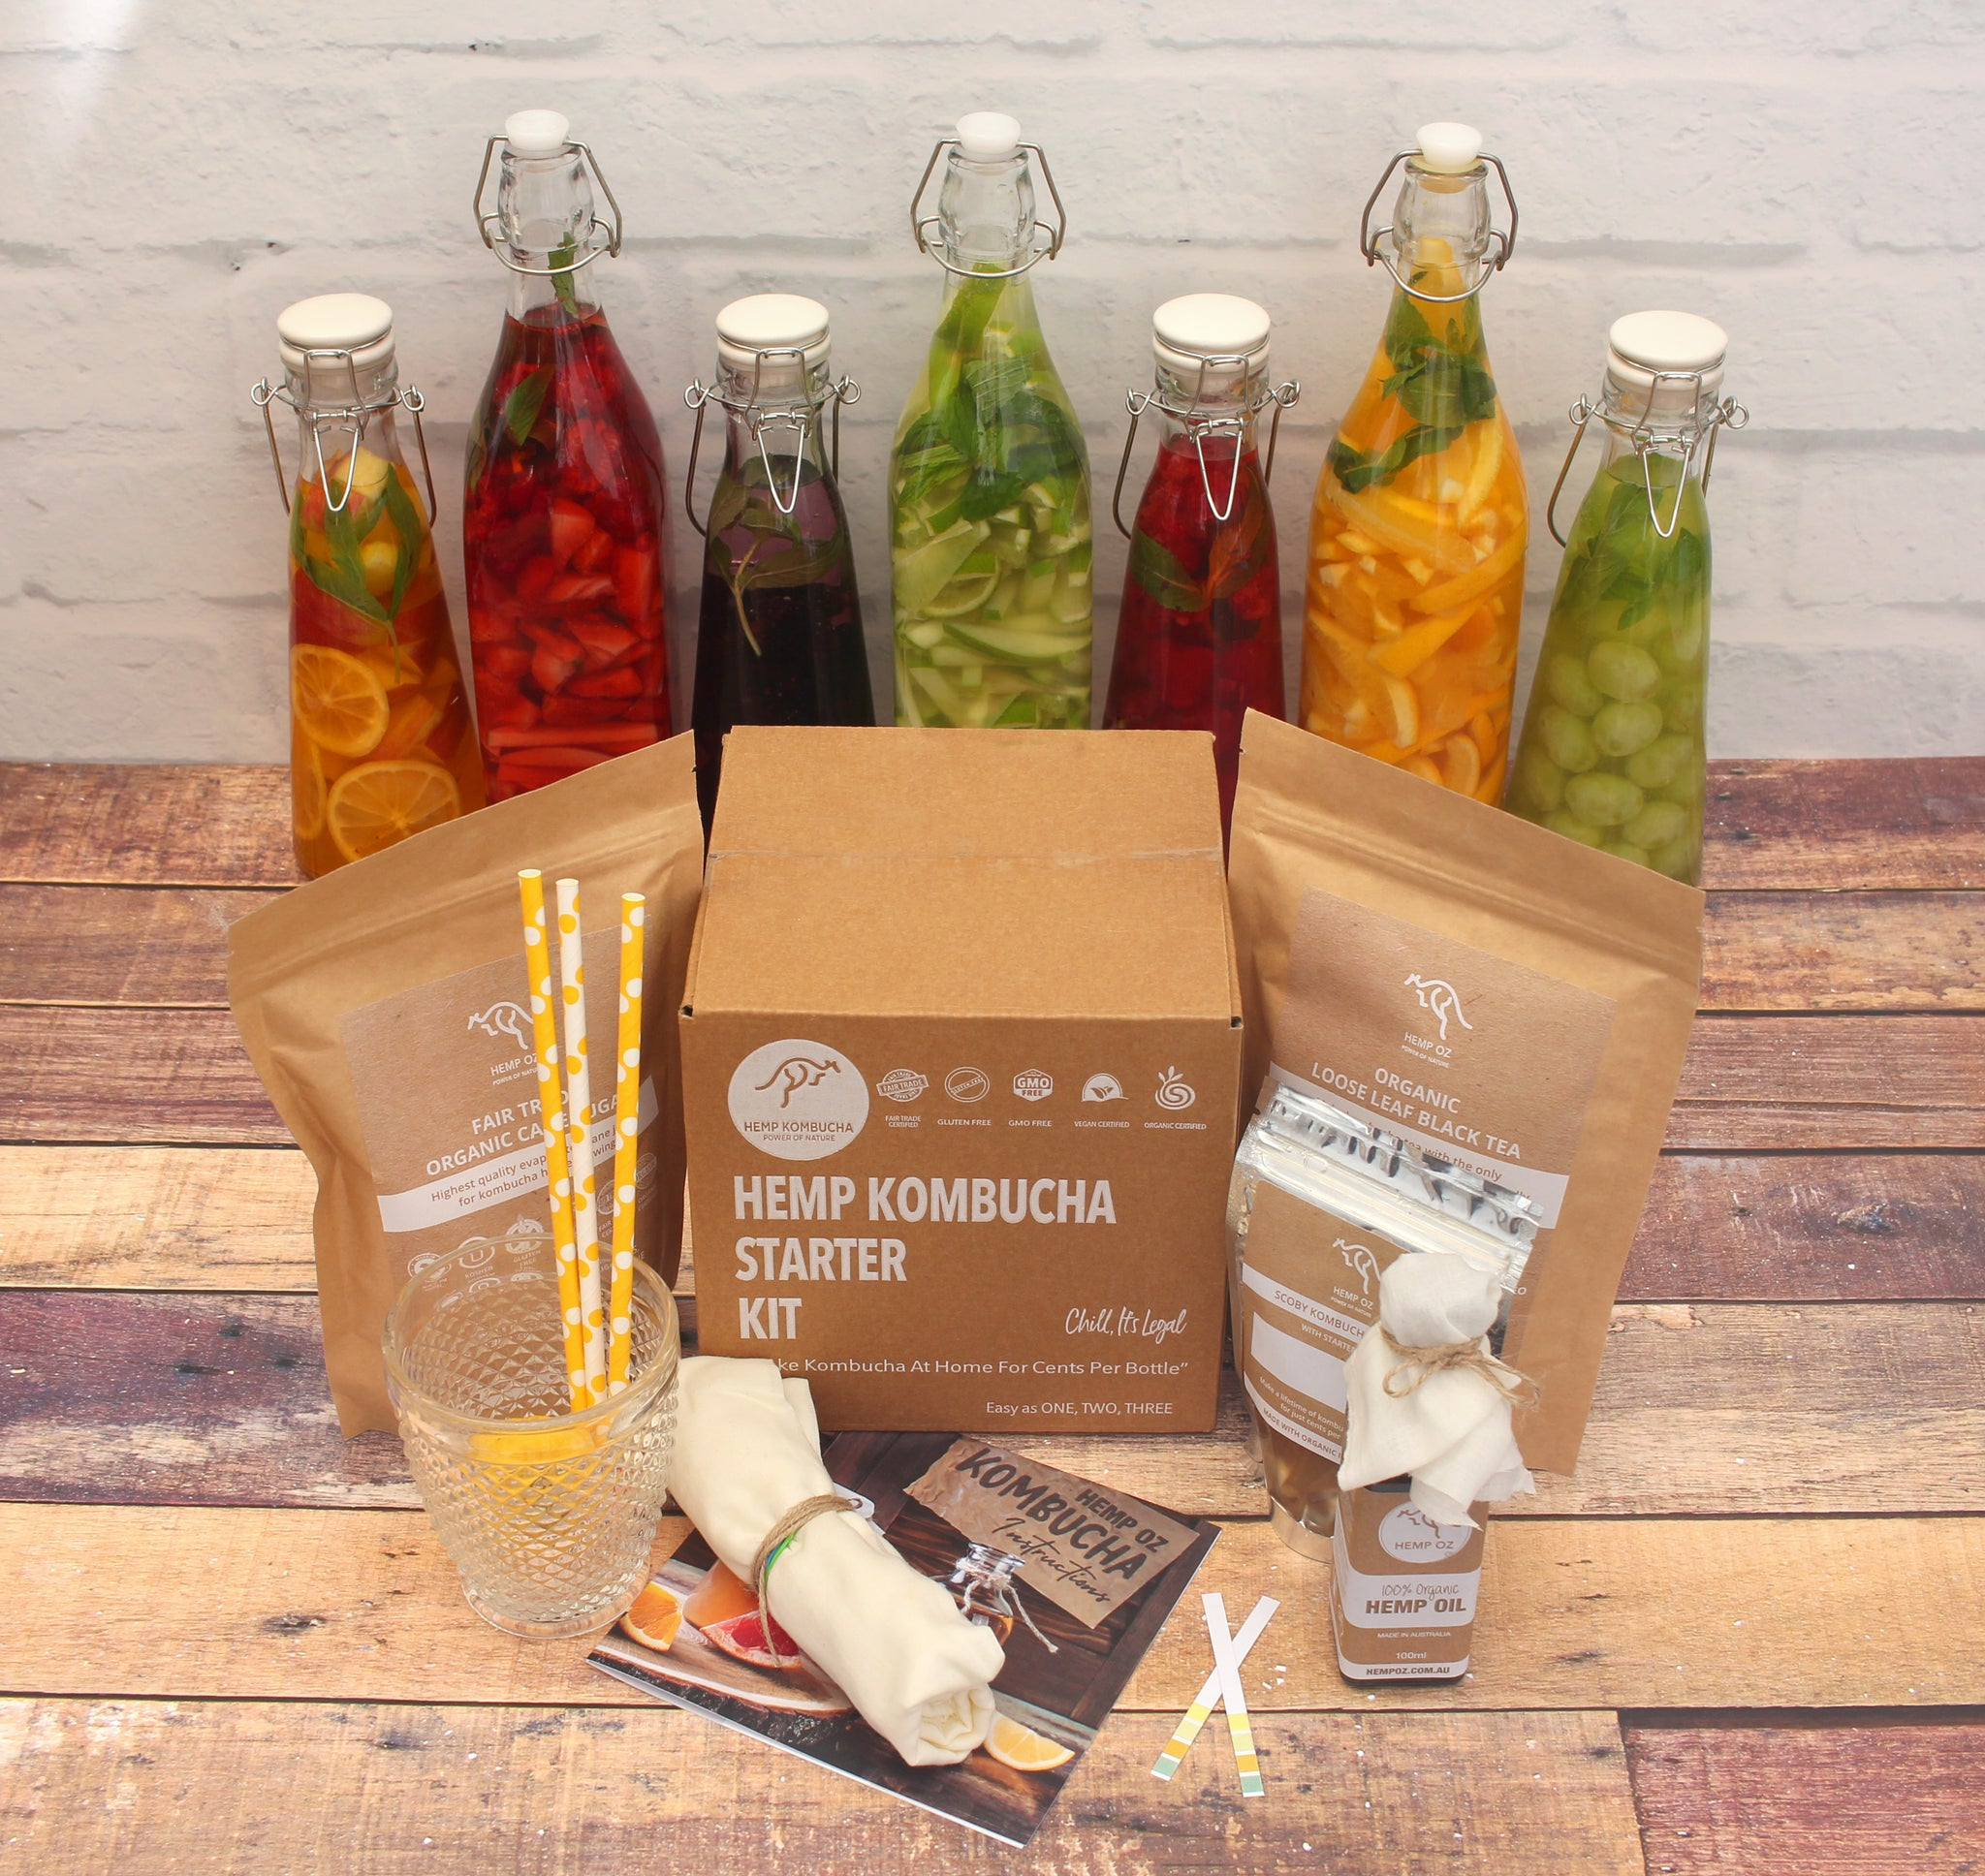 Hemp Kombucha Starter Kit